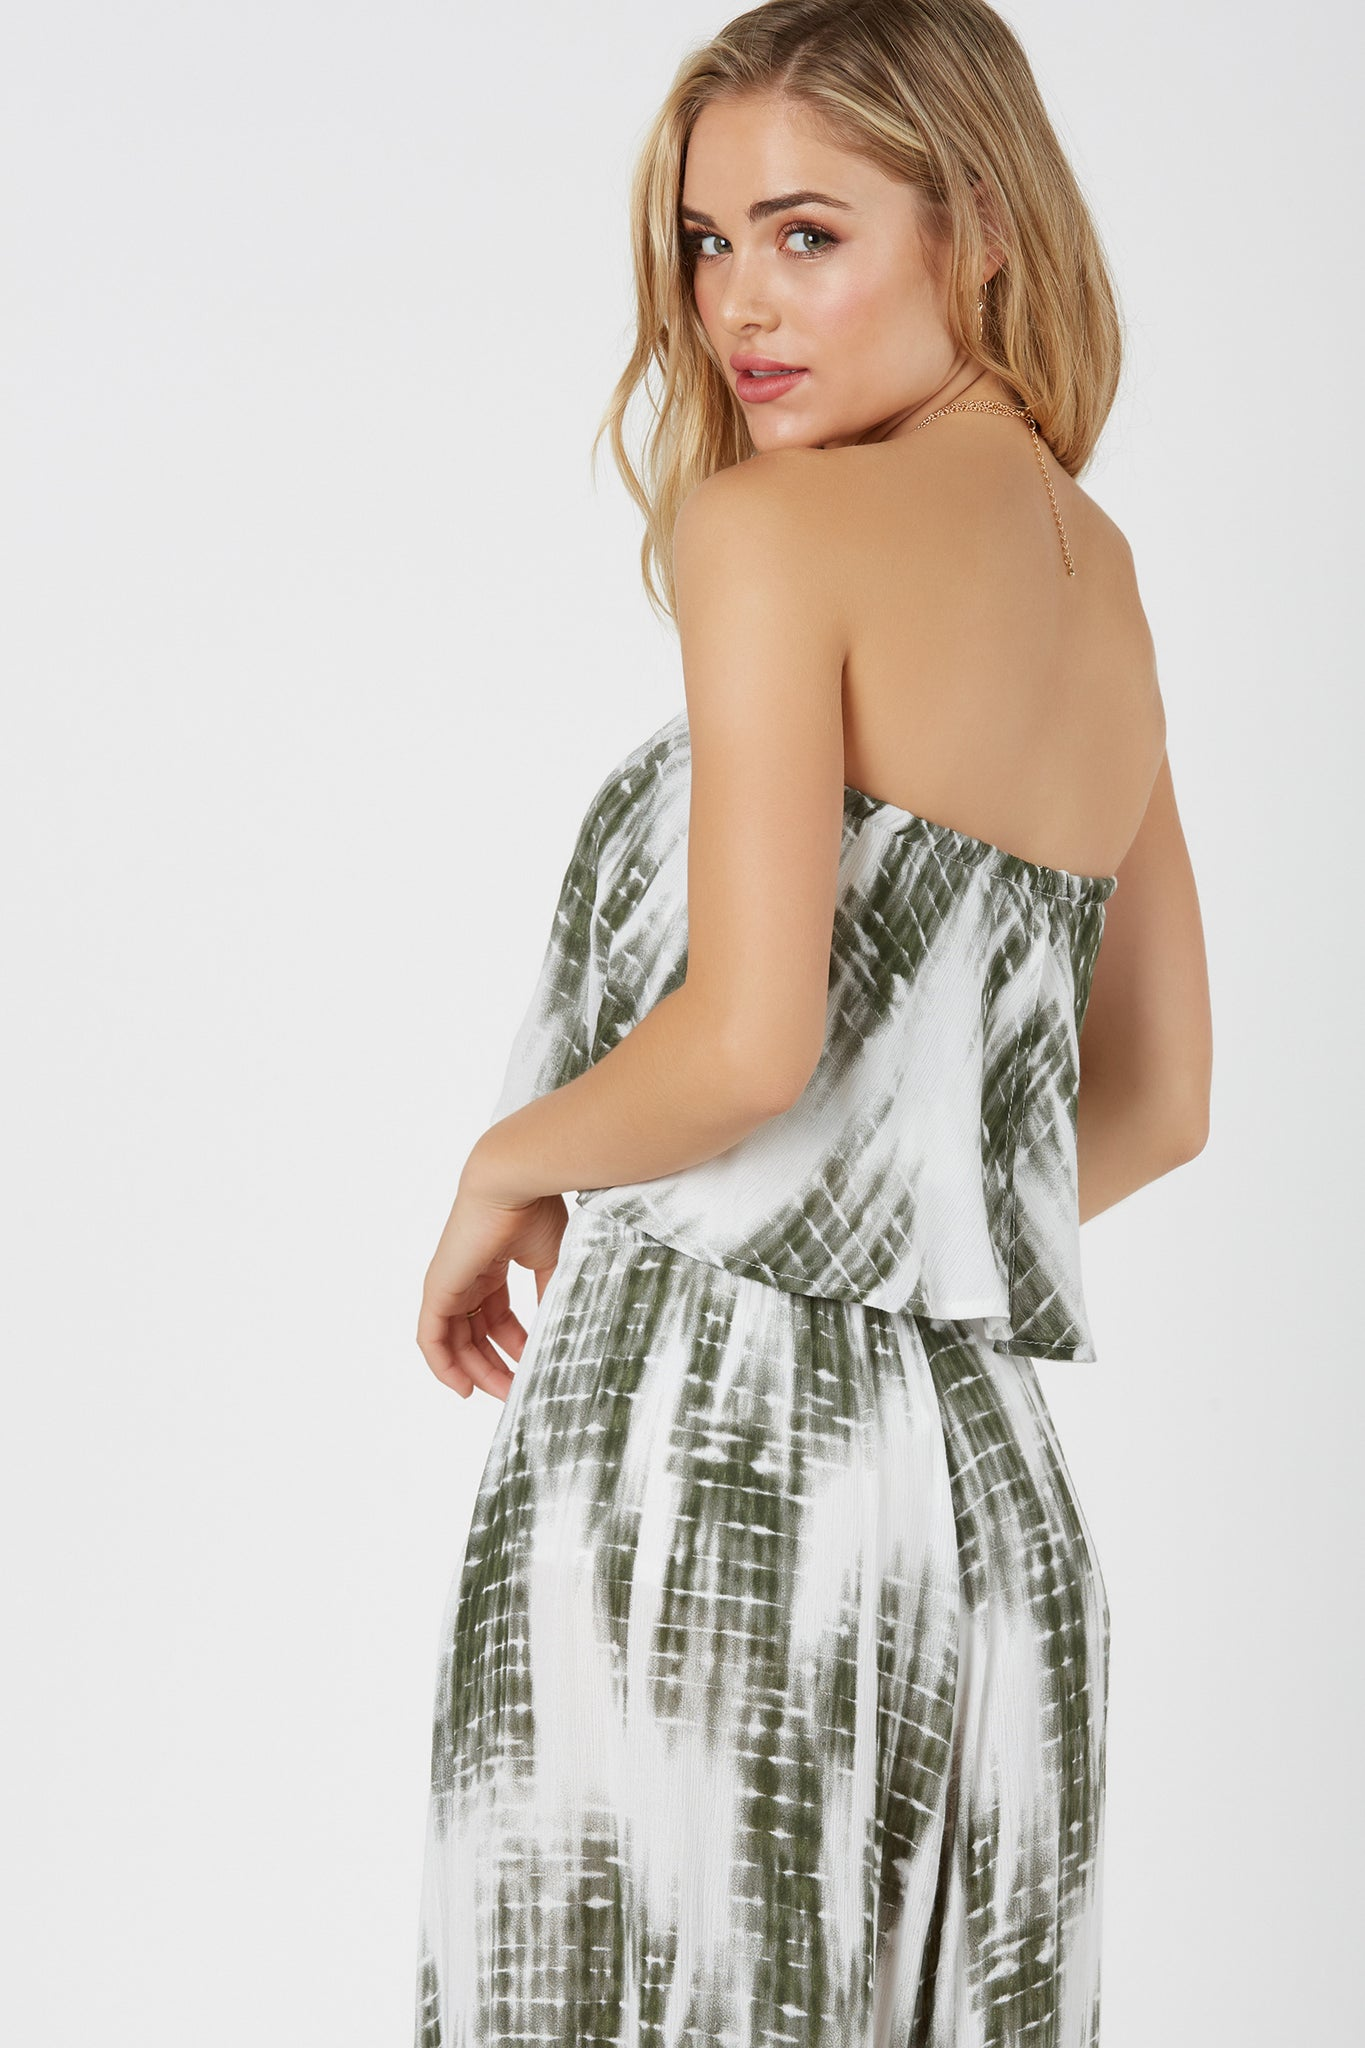 Strapless tiered tube top with tie-dye pattern throughout. Elasticized hem with comfortable stretch for fit.